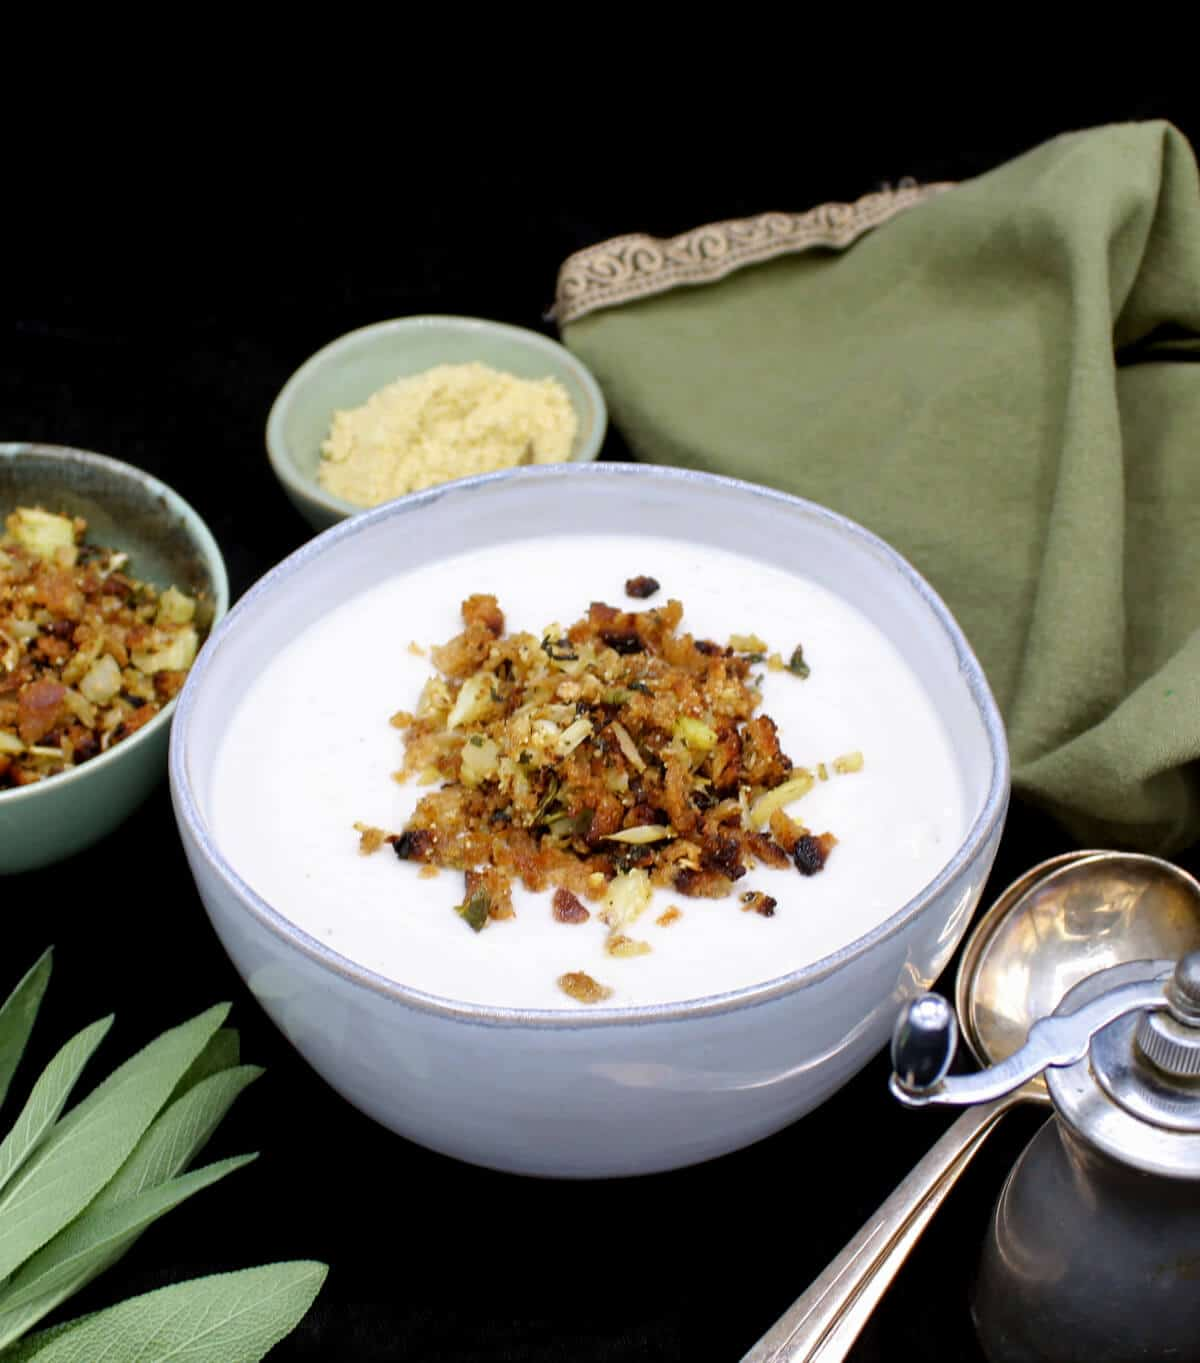 Creamy vegan cauliflower soup in a gray ceramic bowl with crunchy golden breadcrumb topping, with sage leaves, silverware, a pepper grinder and a green napkin next to it.